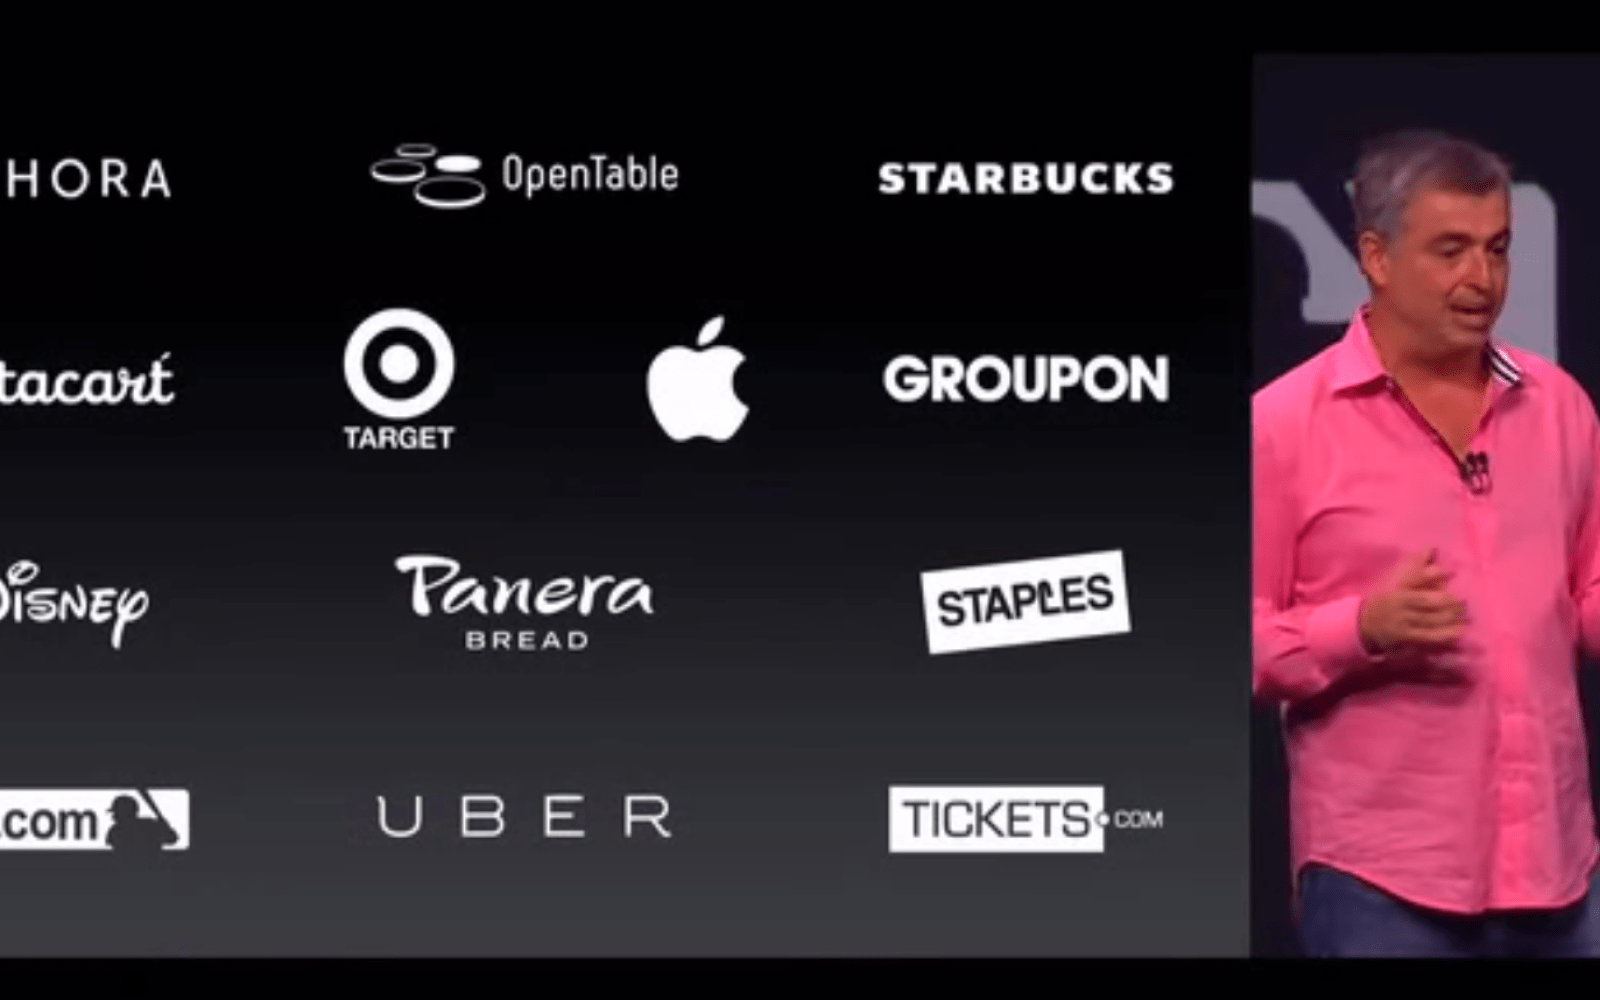 Internal Panera Bread memo claims Apple Pay will launch on October